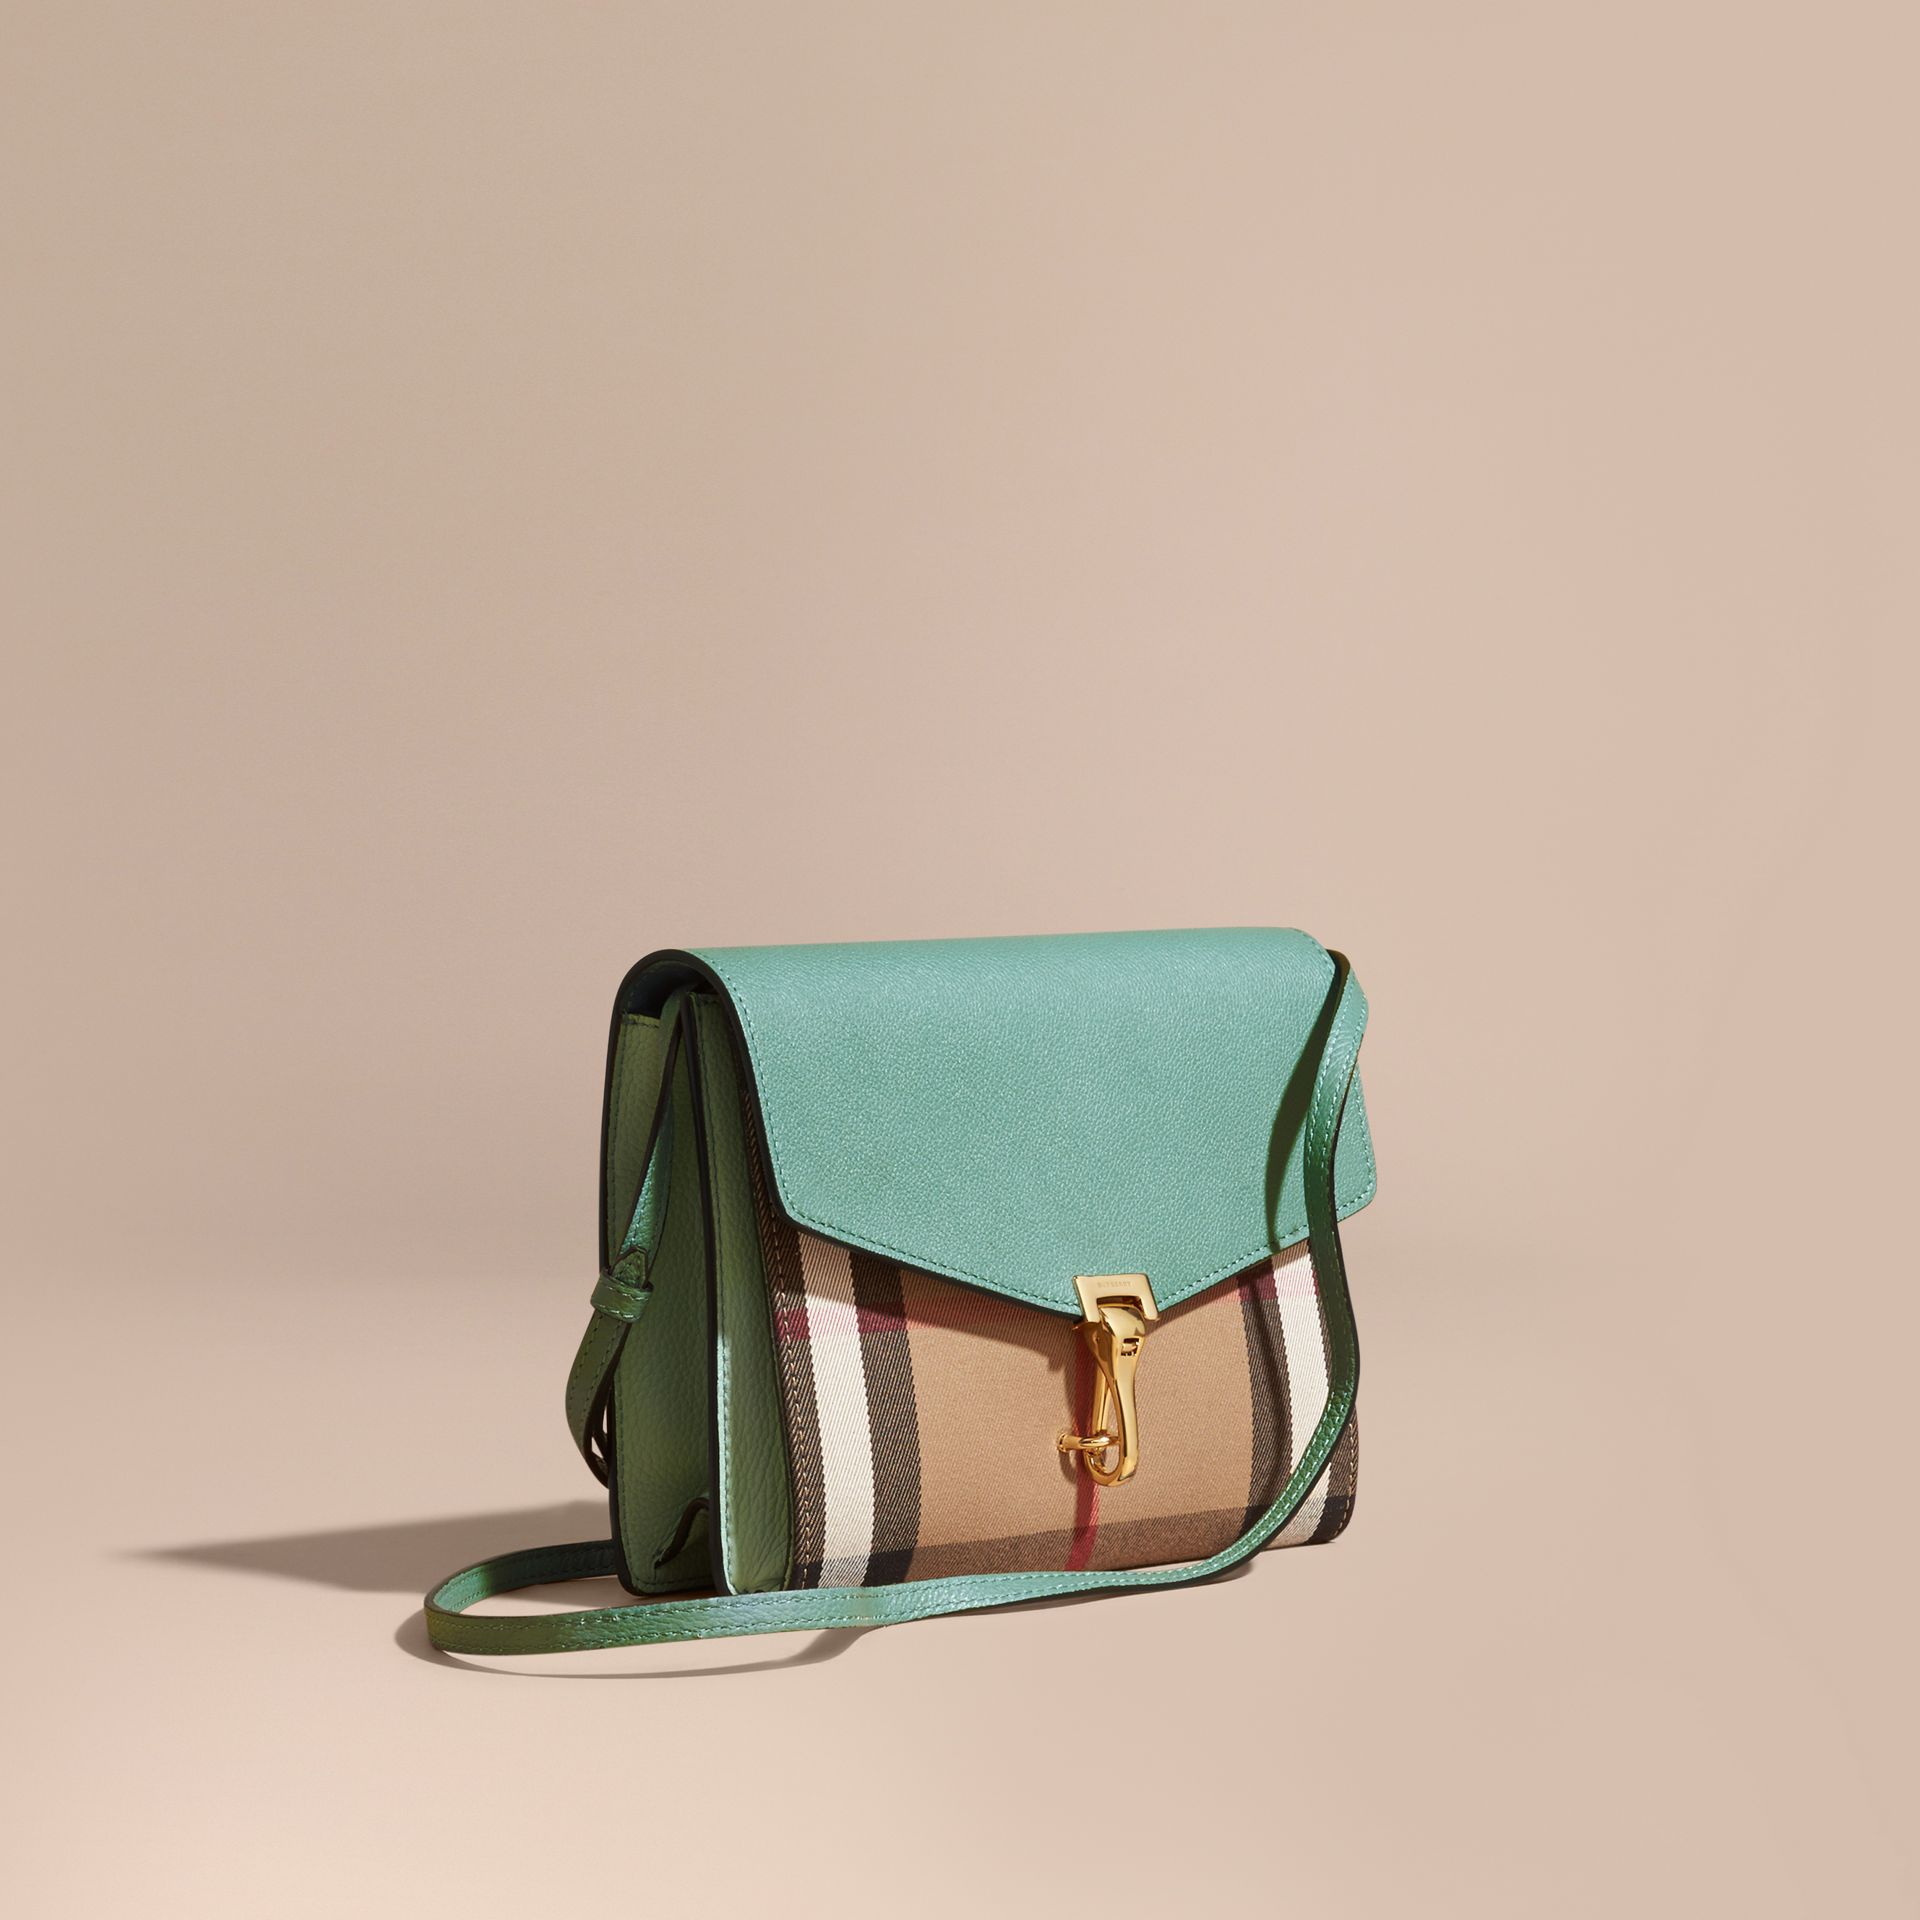 Small Leather and House Check Crossbody Bag Celadon Blue - gallery image 1